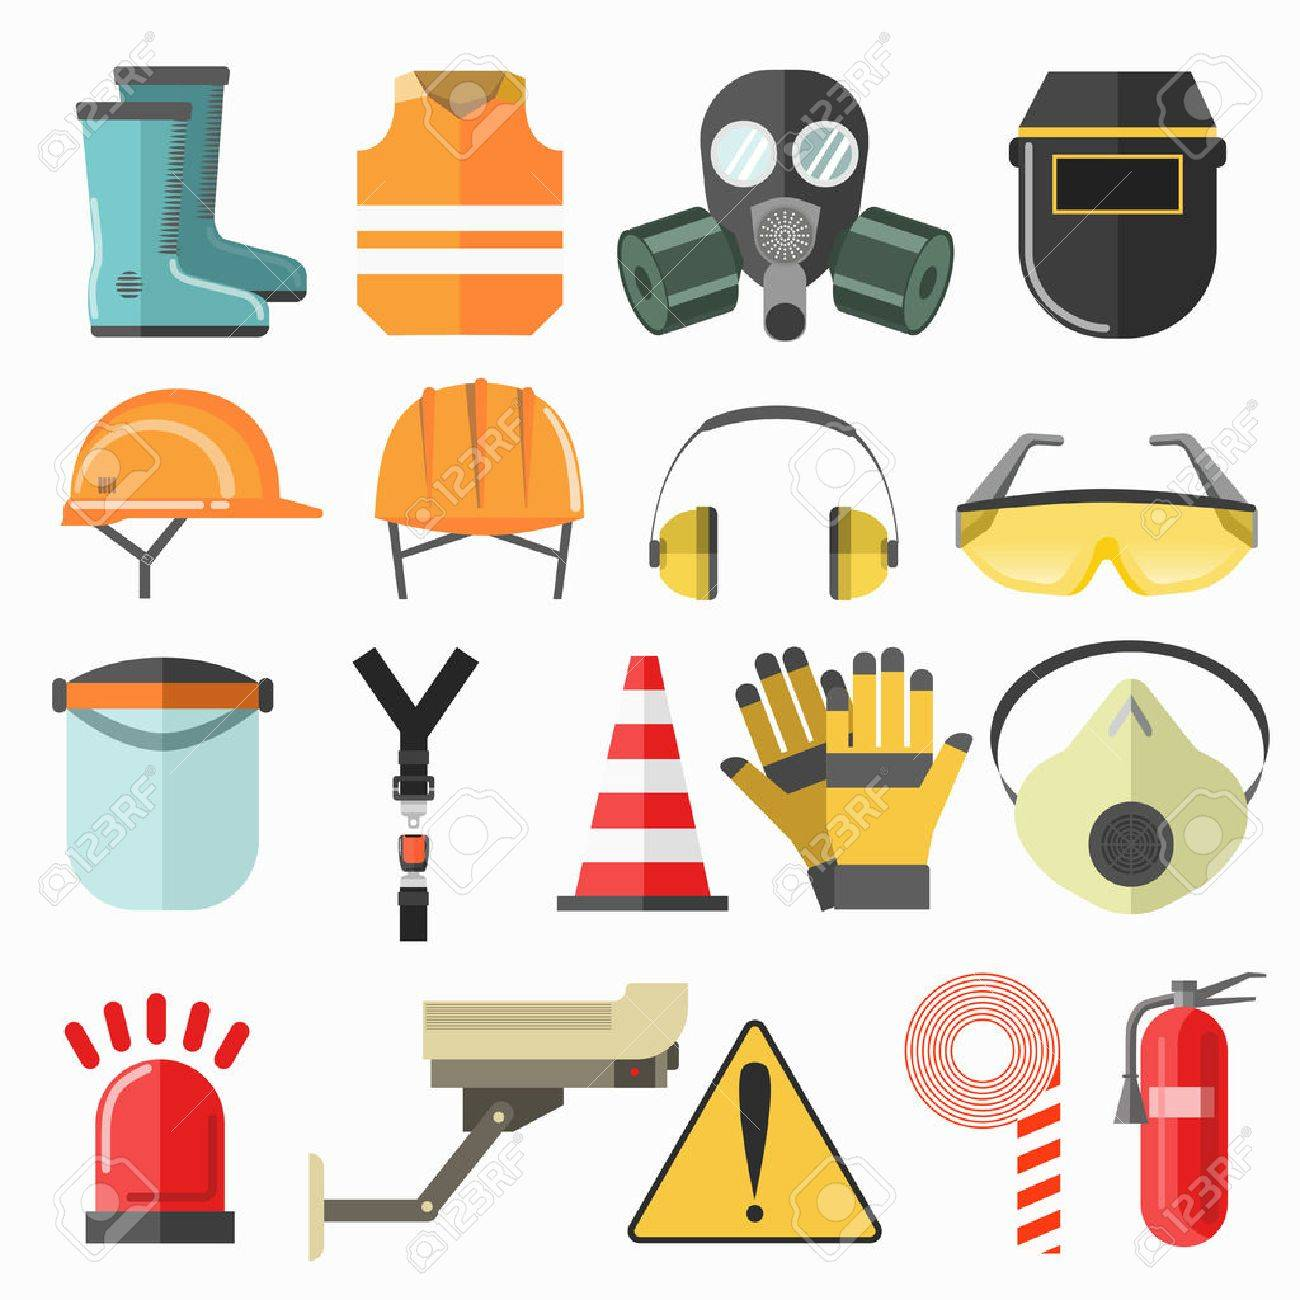 Safety work icons. Safety at work vector icons collection. Vector flat illustration. - 67679709